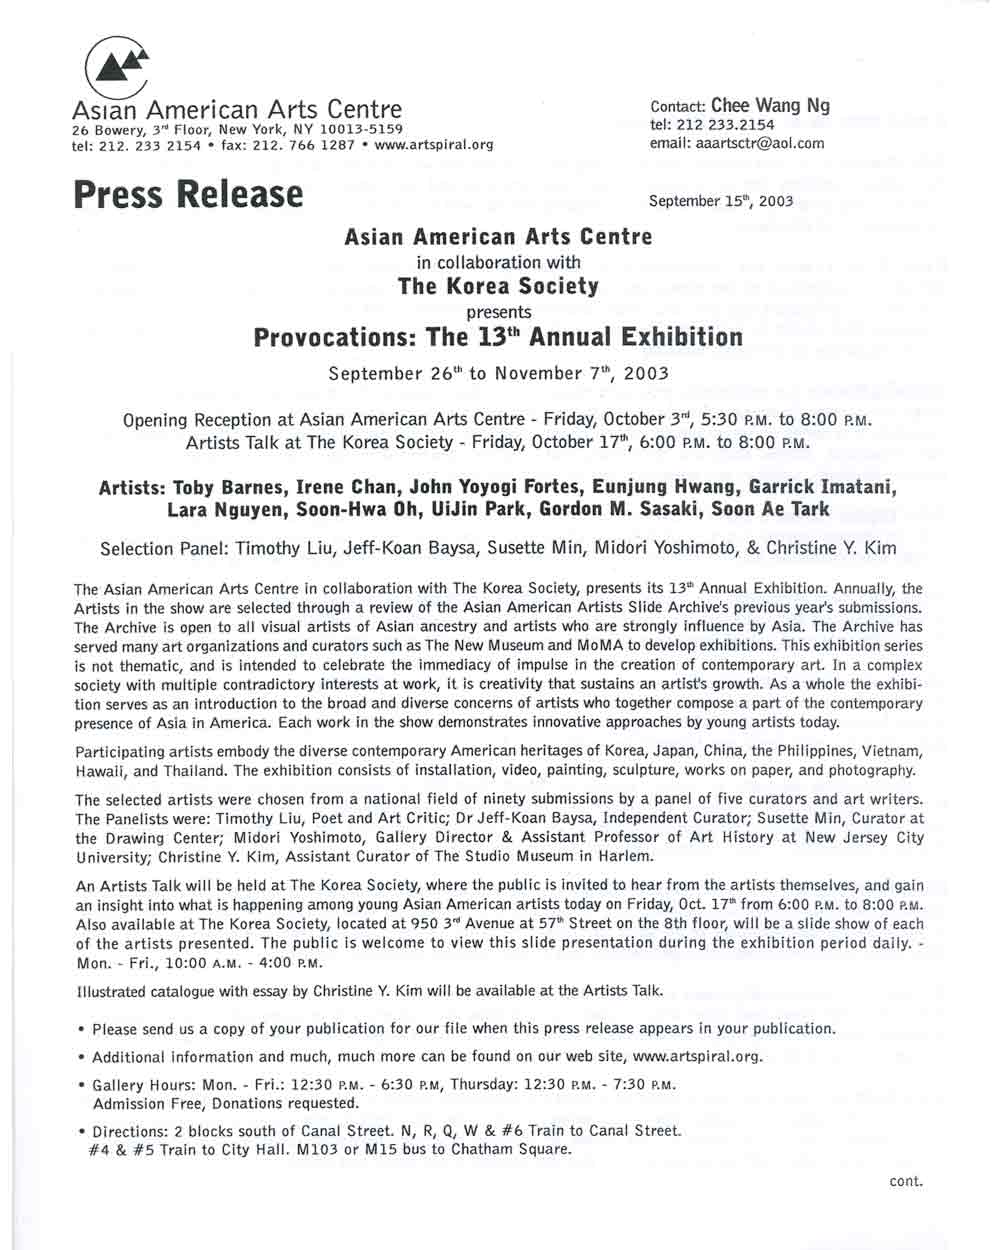 Provocations, press release, pg 1